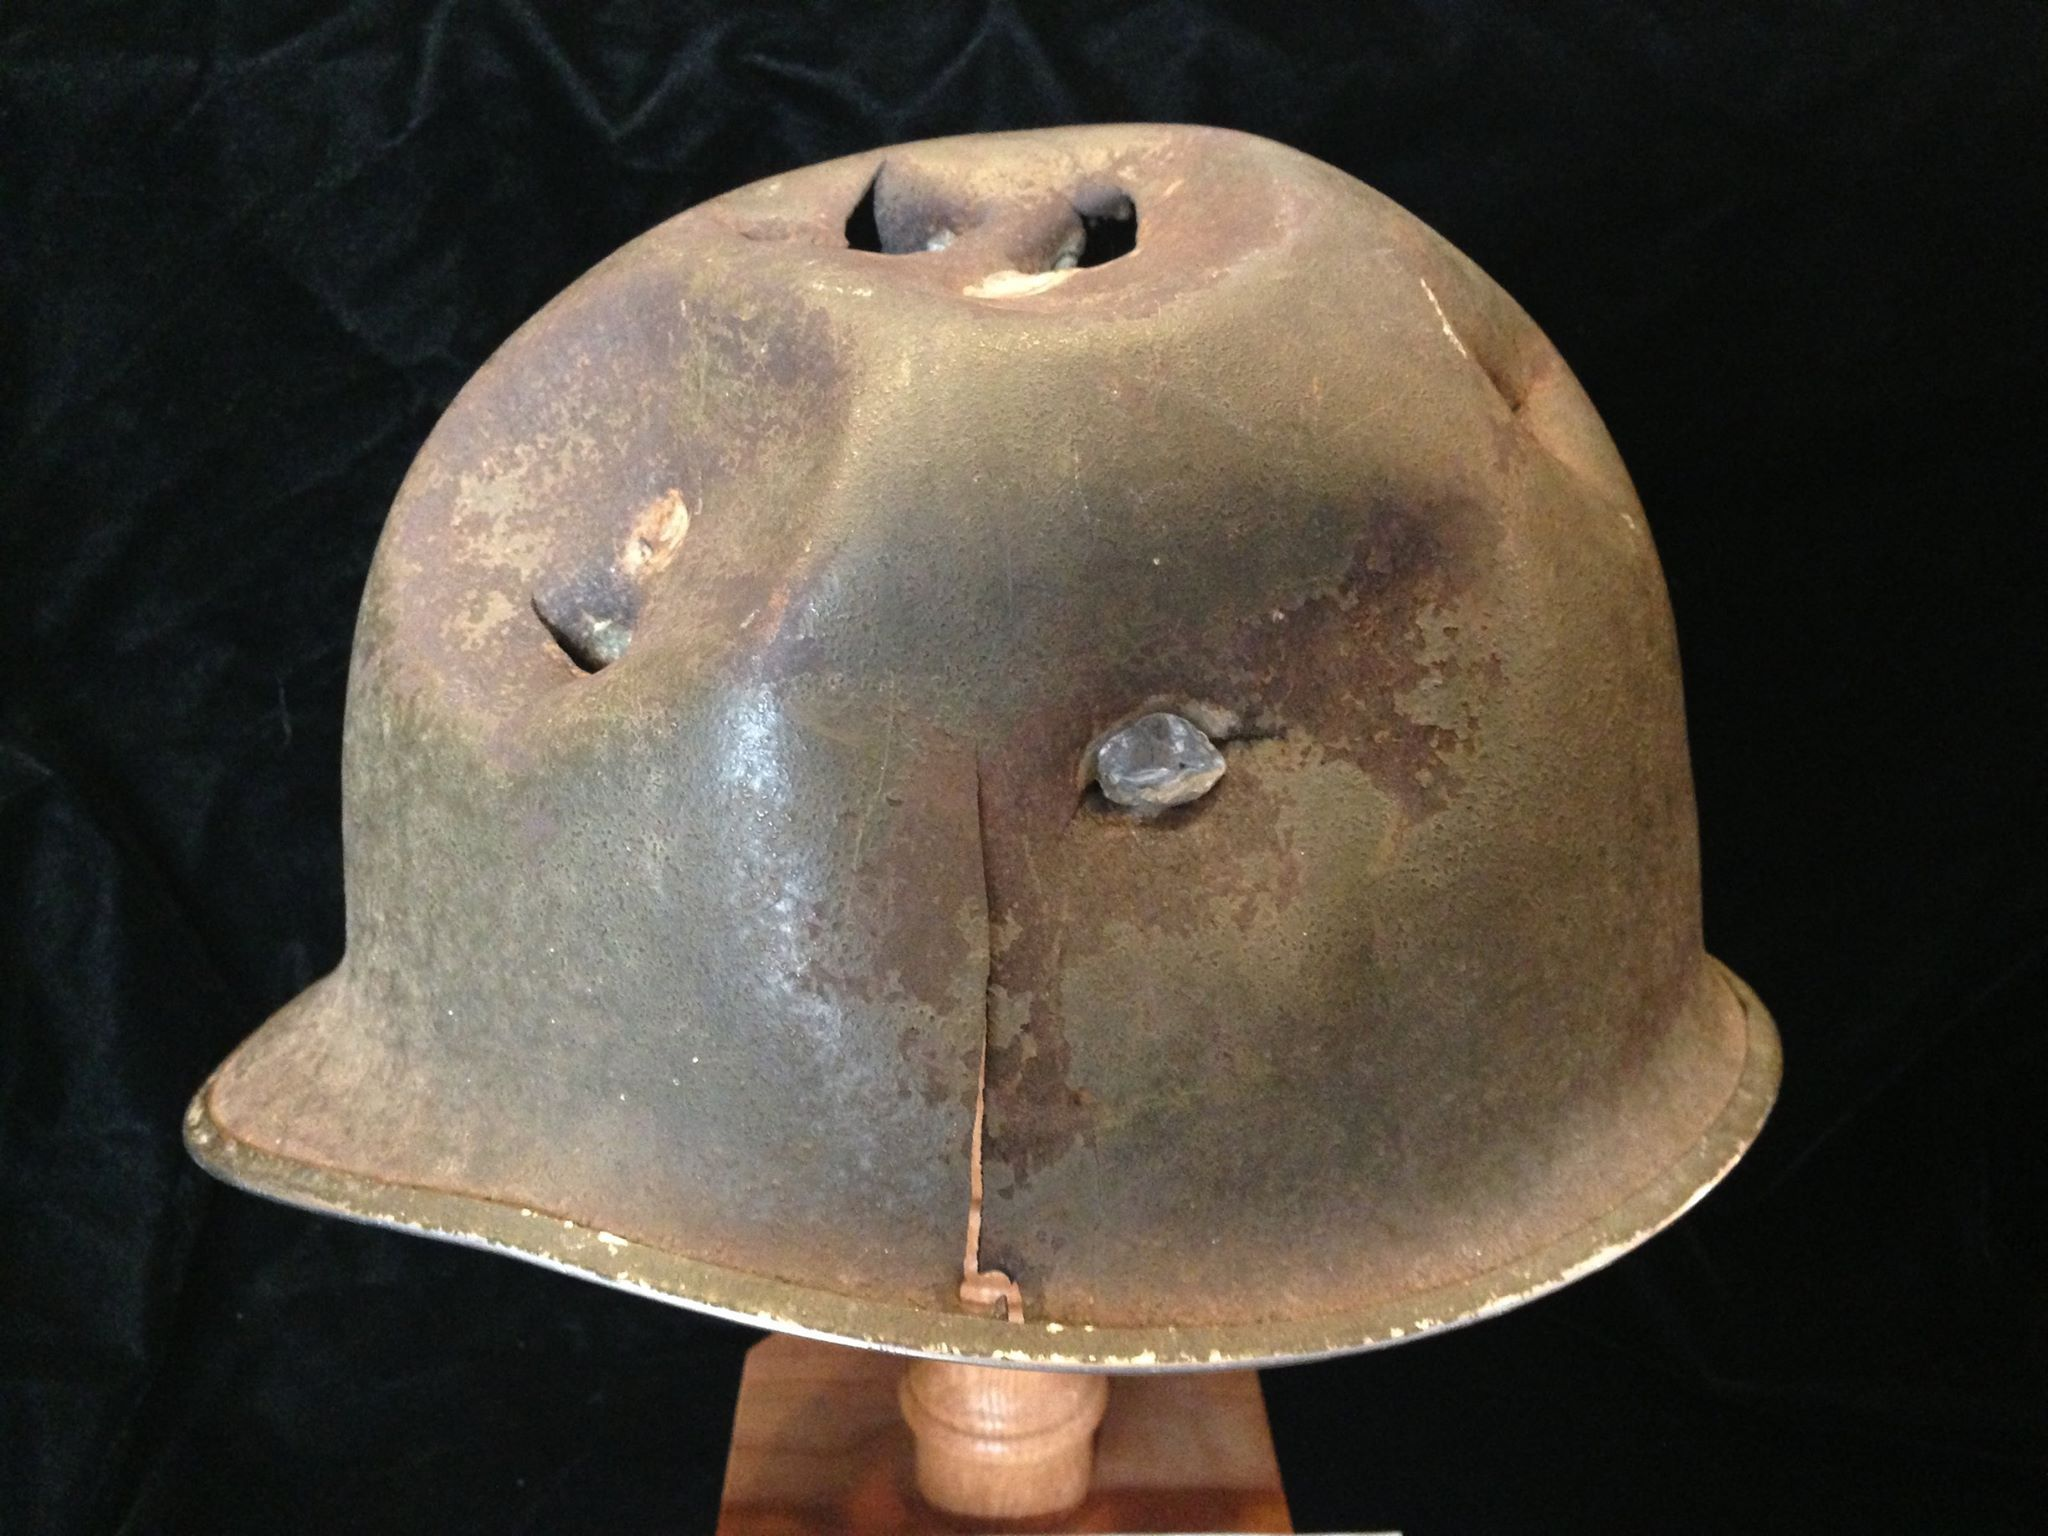 A severely battle damaged M-2 helmet recovered in Sainte